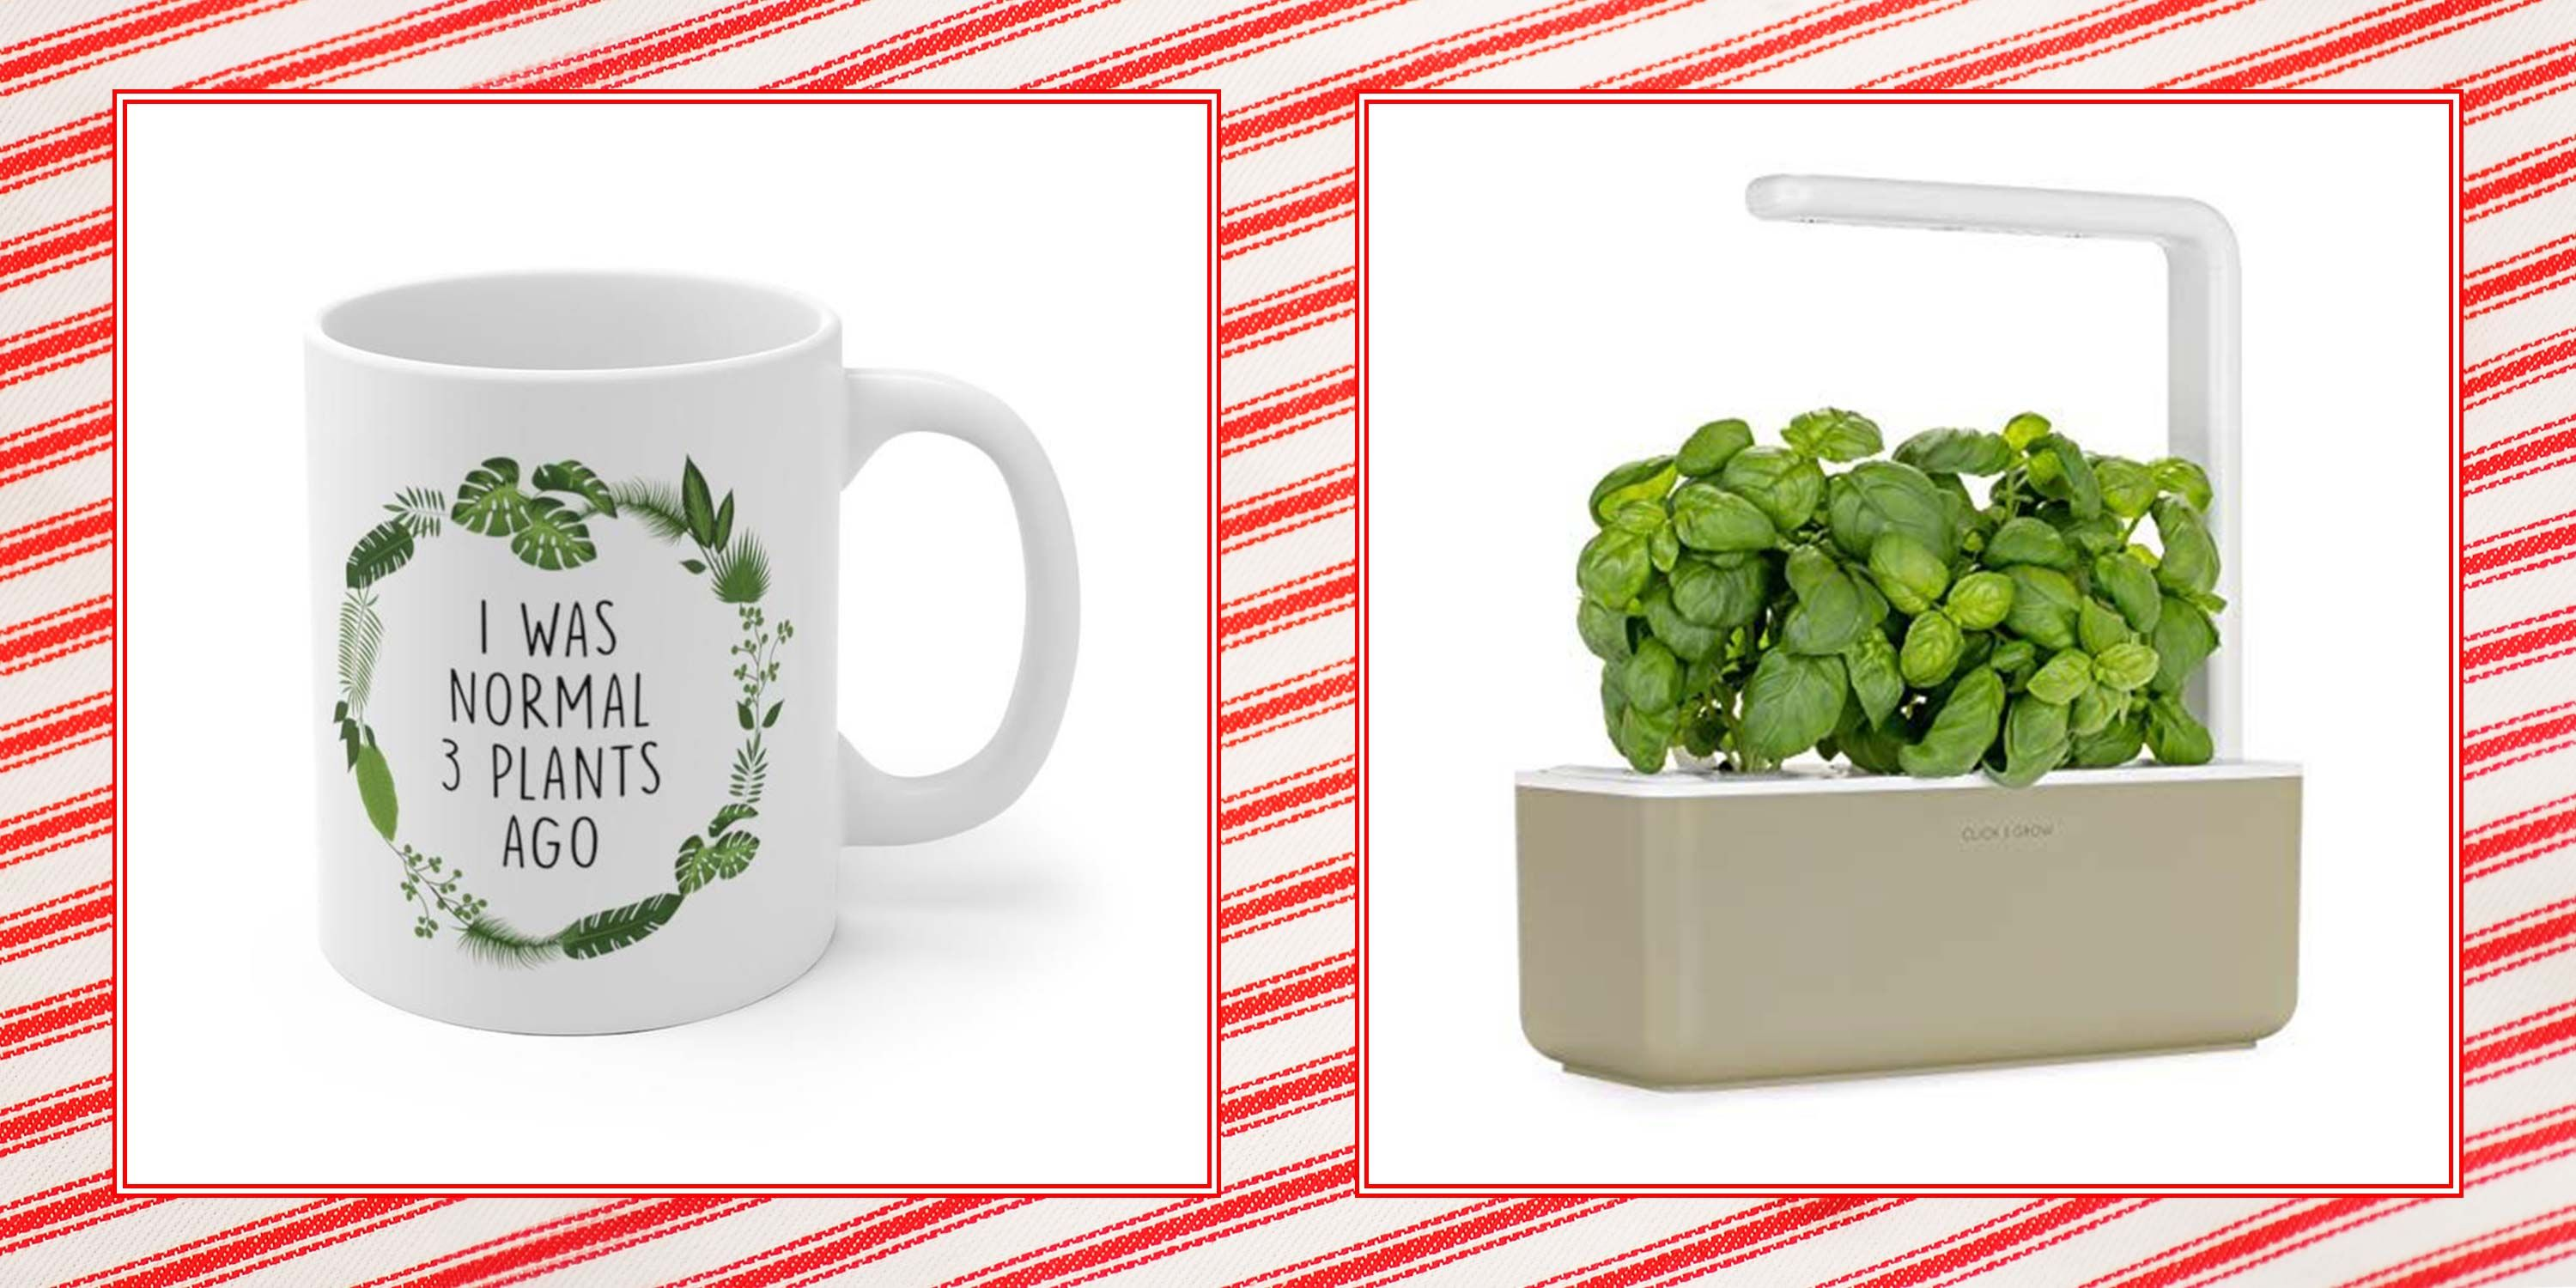 Gardening Gifts For Him >> 35 Best Gardening Gifts Christmas Gift Ideas For Gardeners